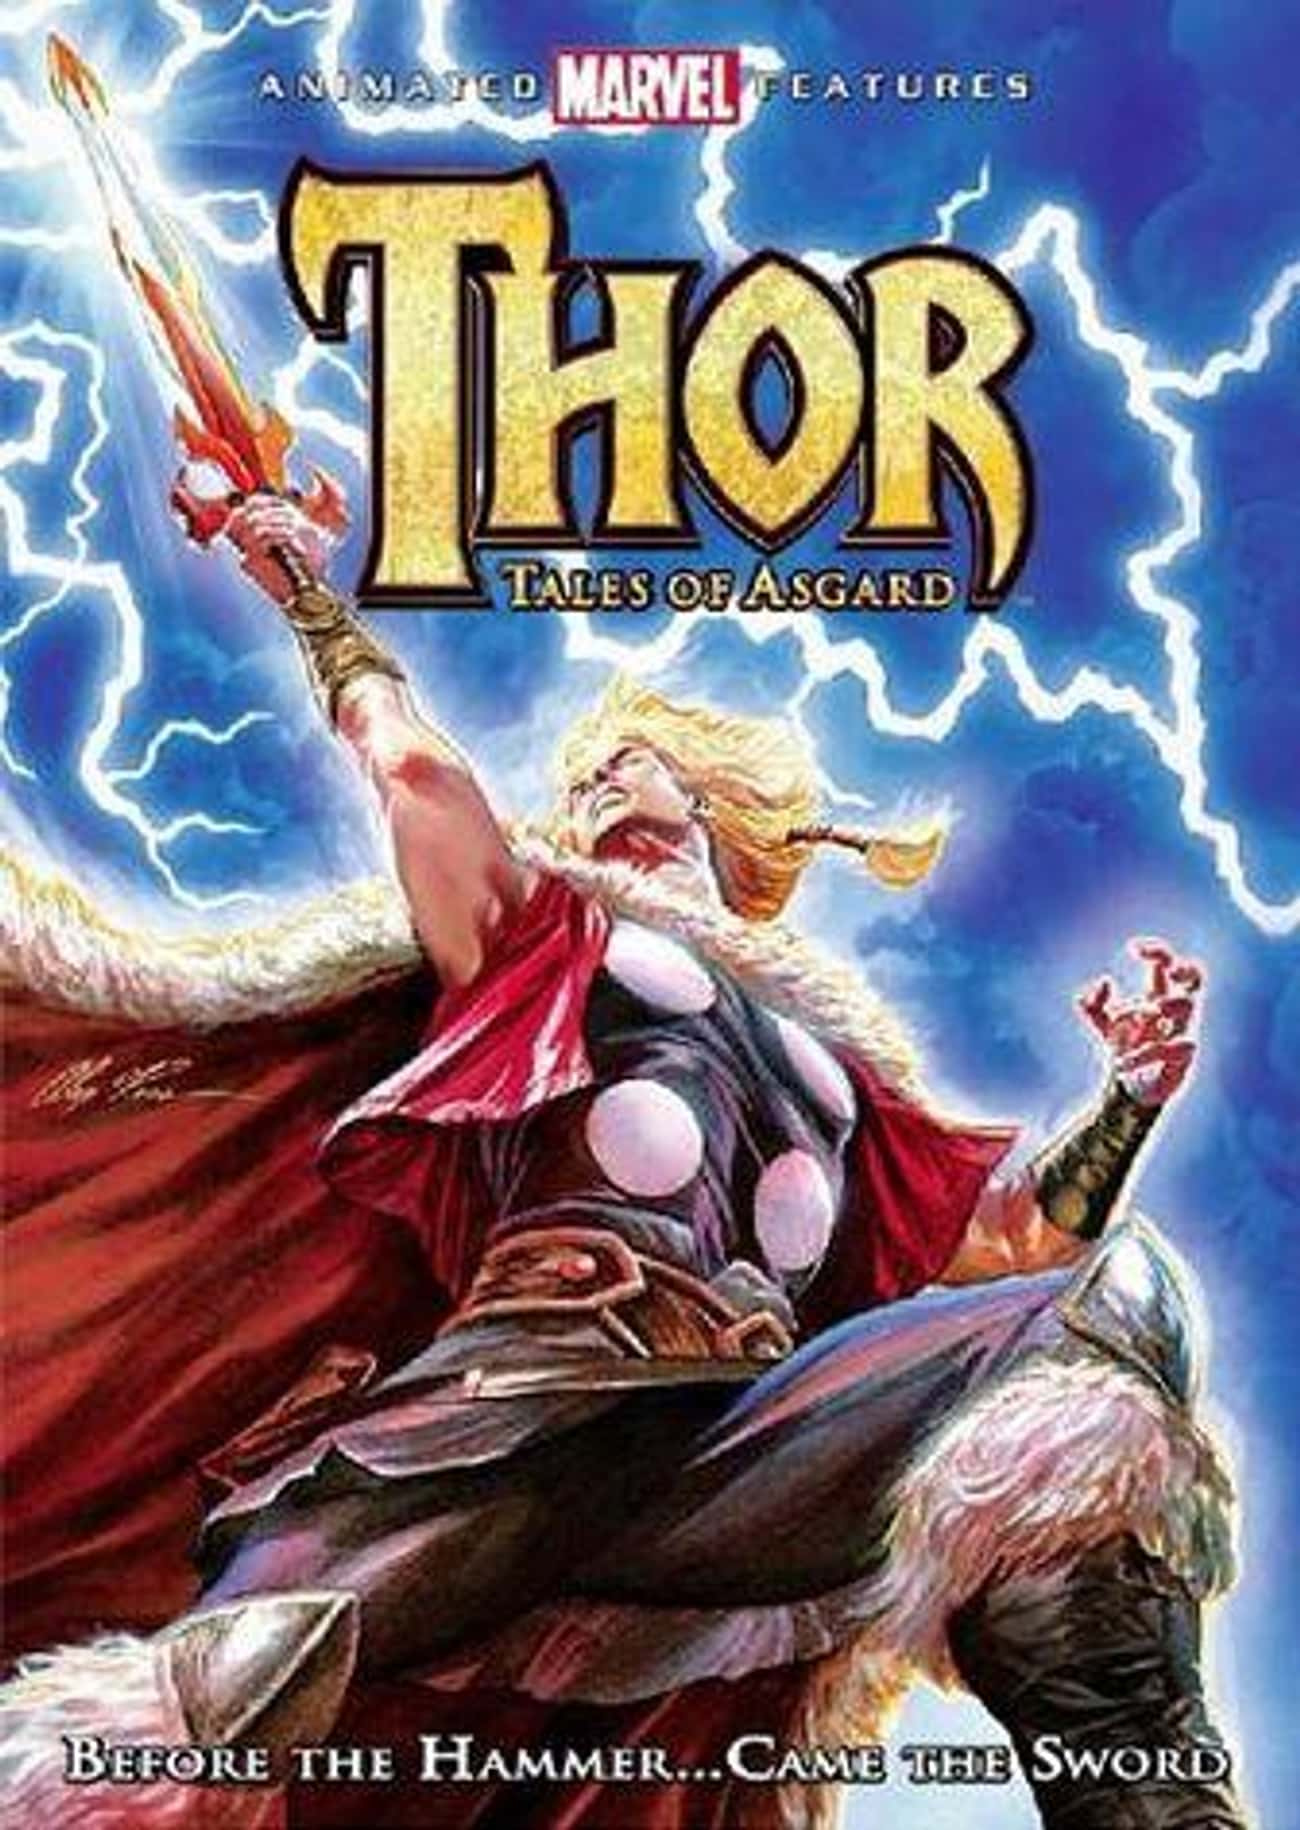 Thor: Tales of Asgard is listed (or ranked) 4 on the list All the Thor Movies in the MCU (And That Other One), Ranked